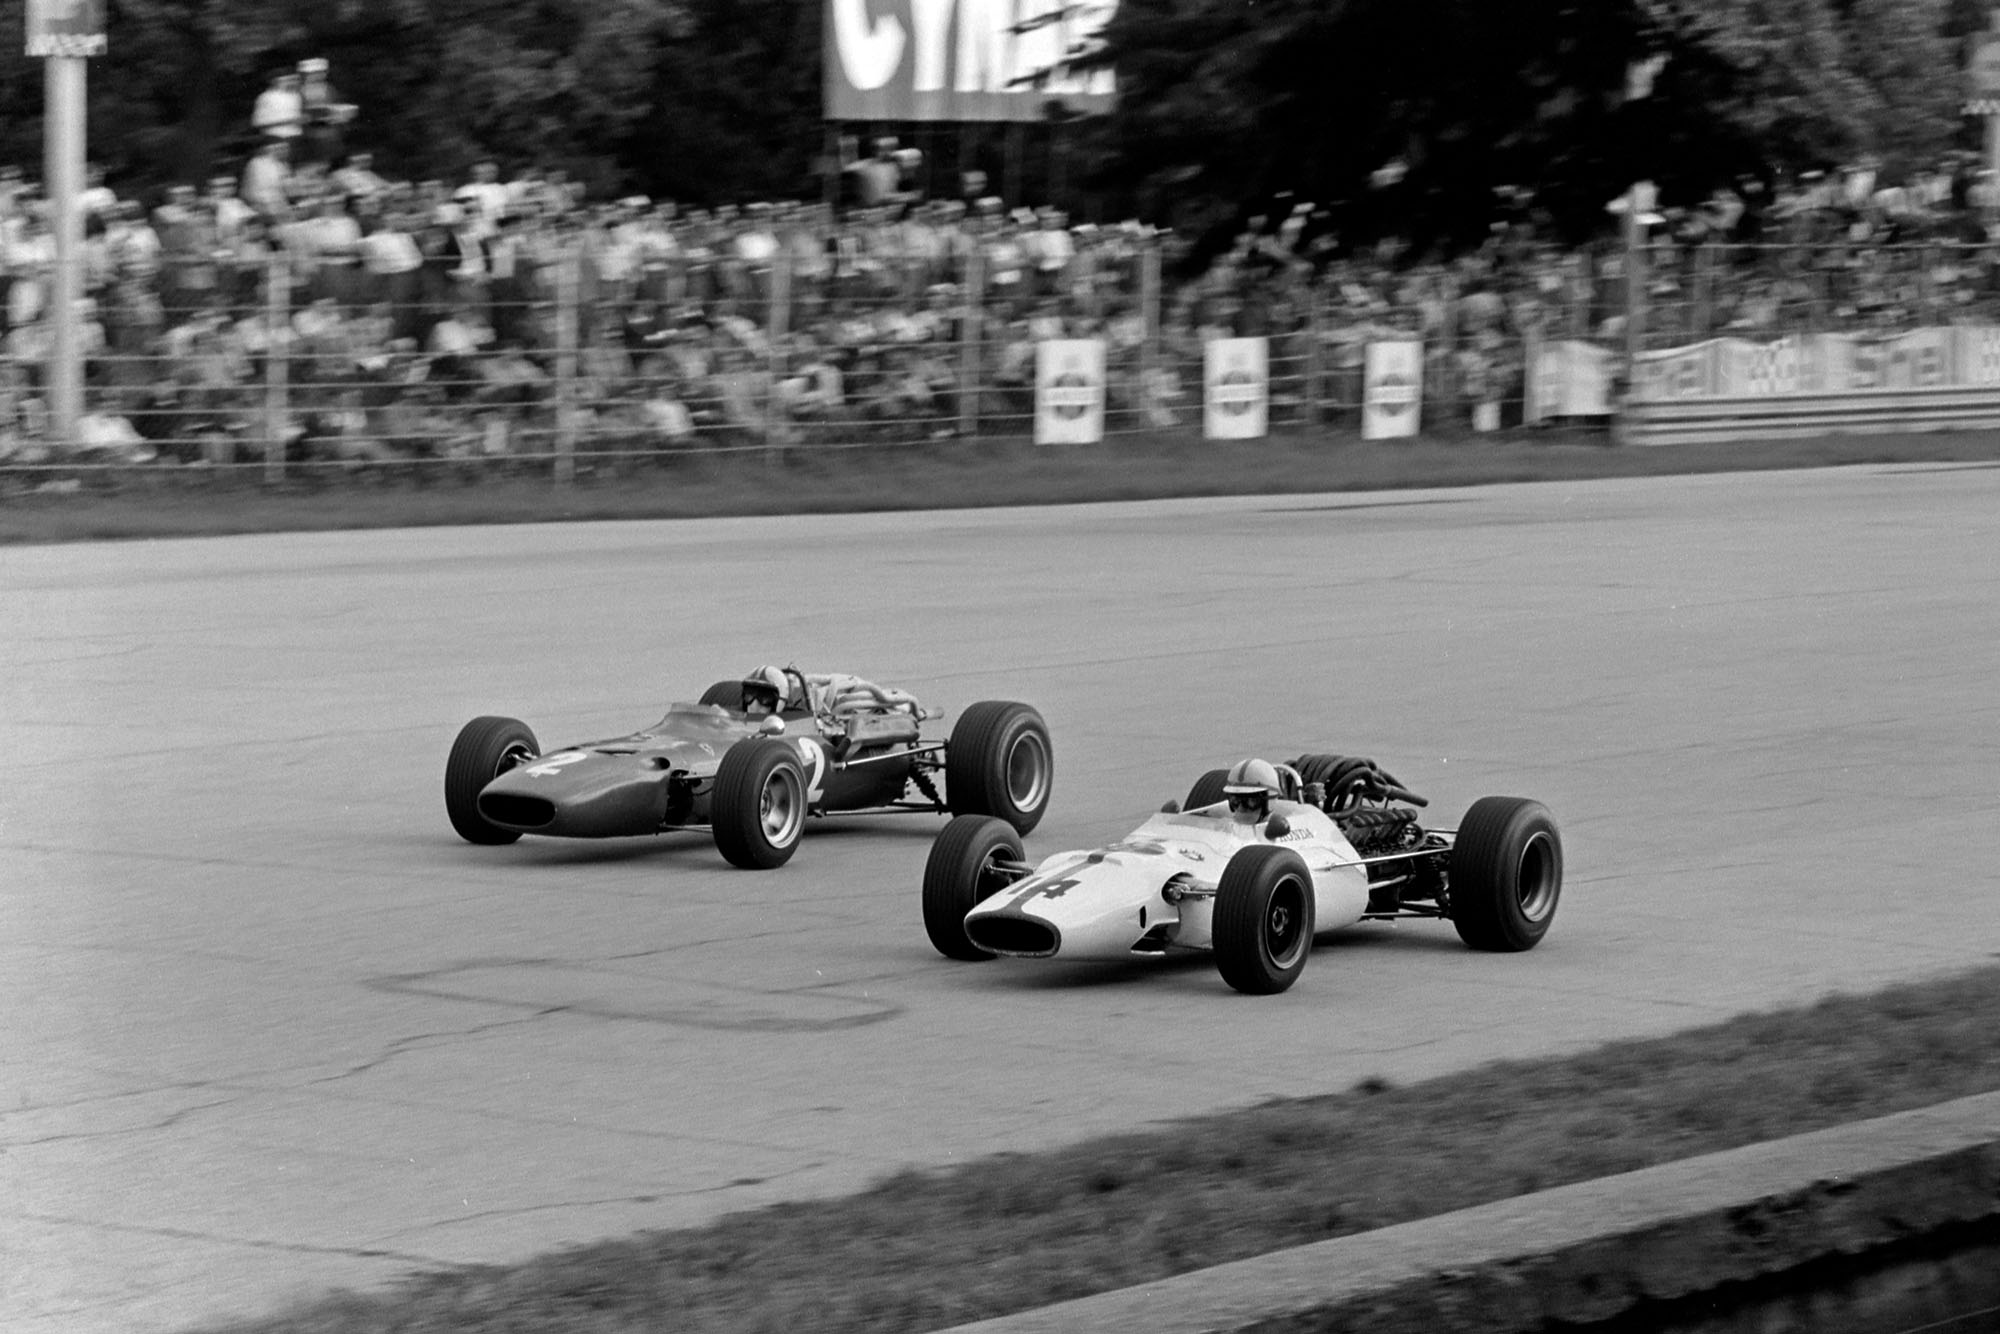 John Surtees, Honda RA300, battles with Chris Amon, Ferrari 312.